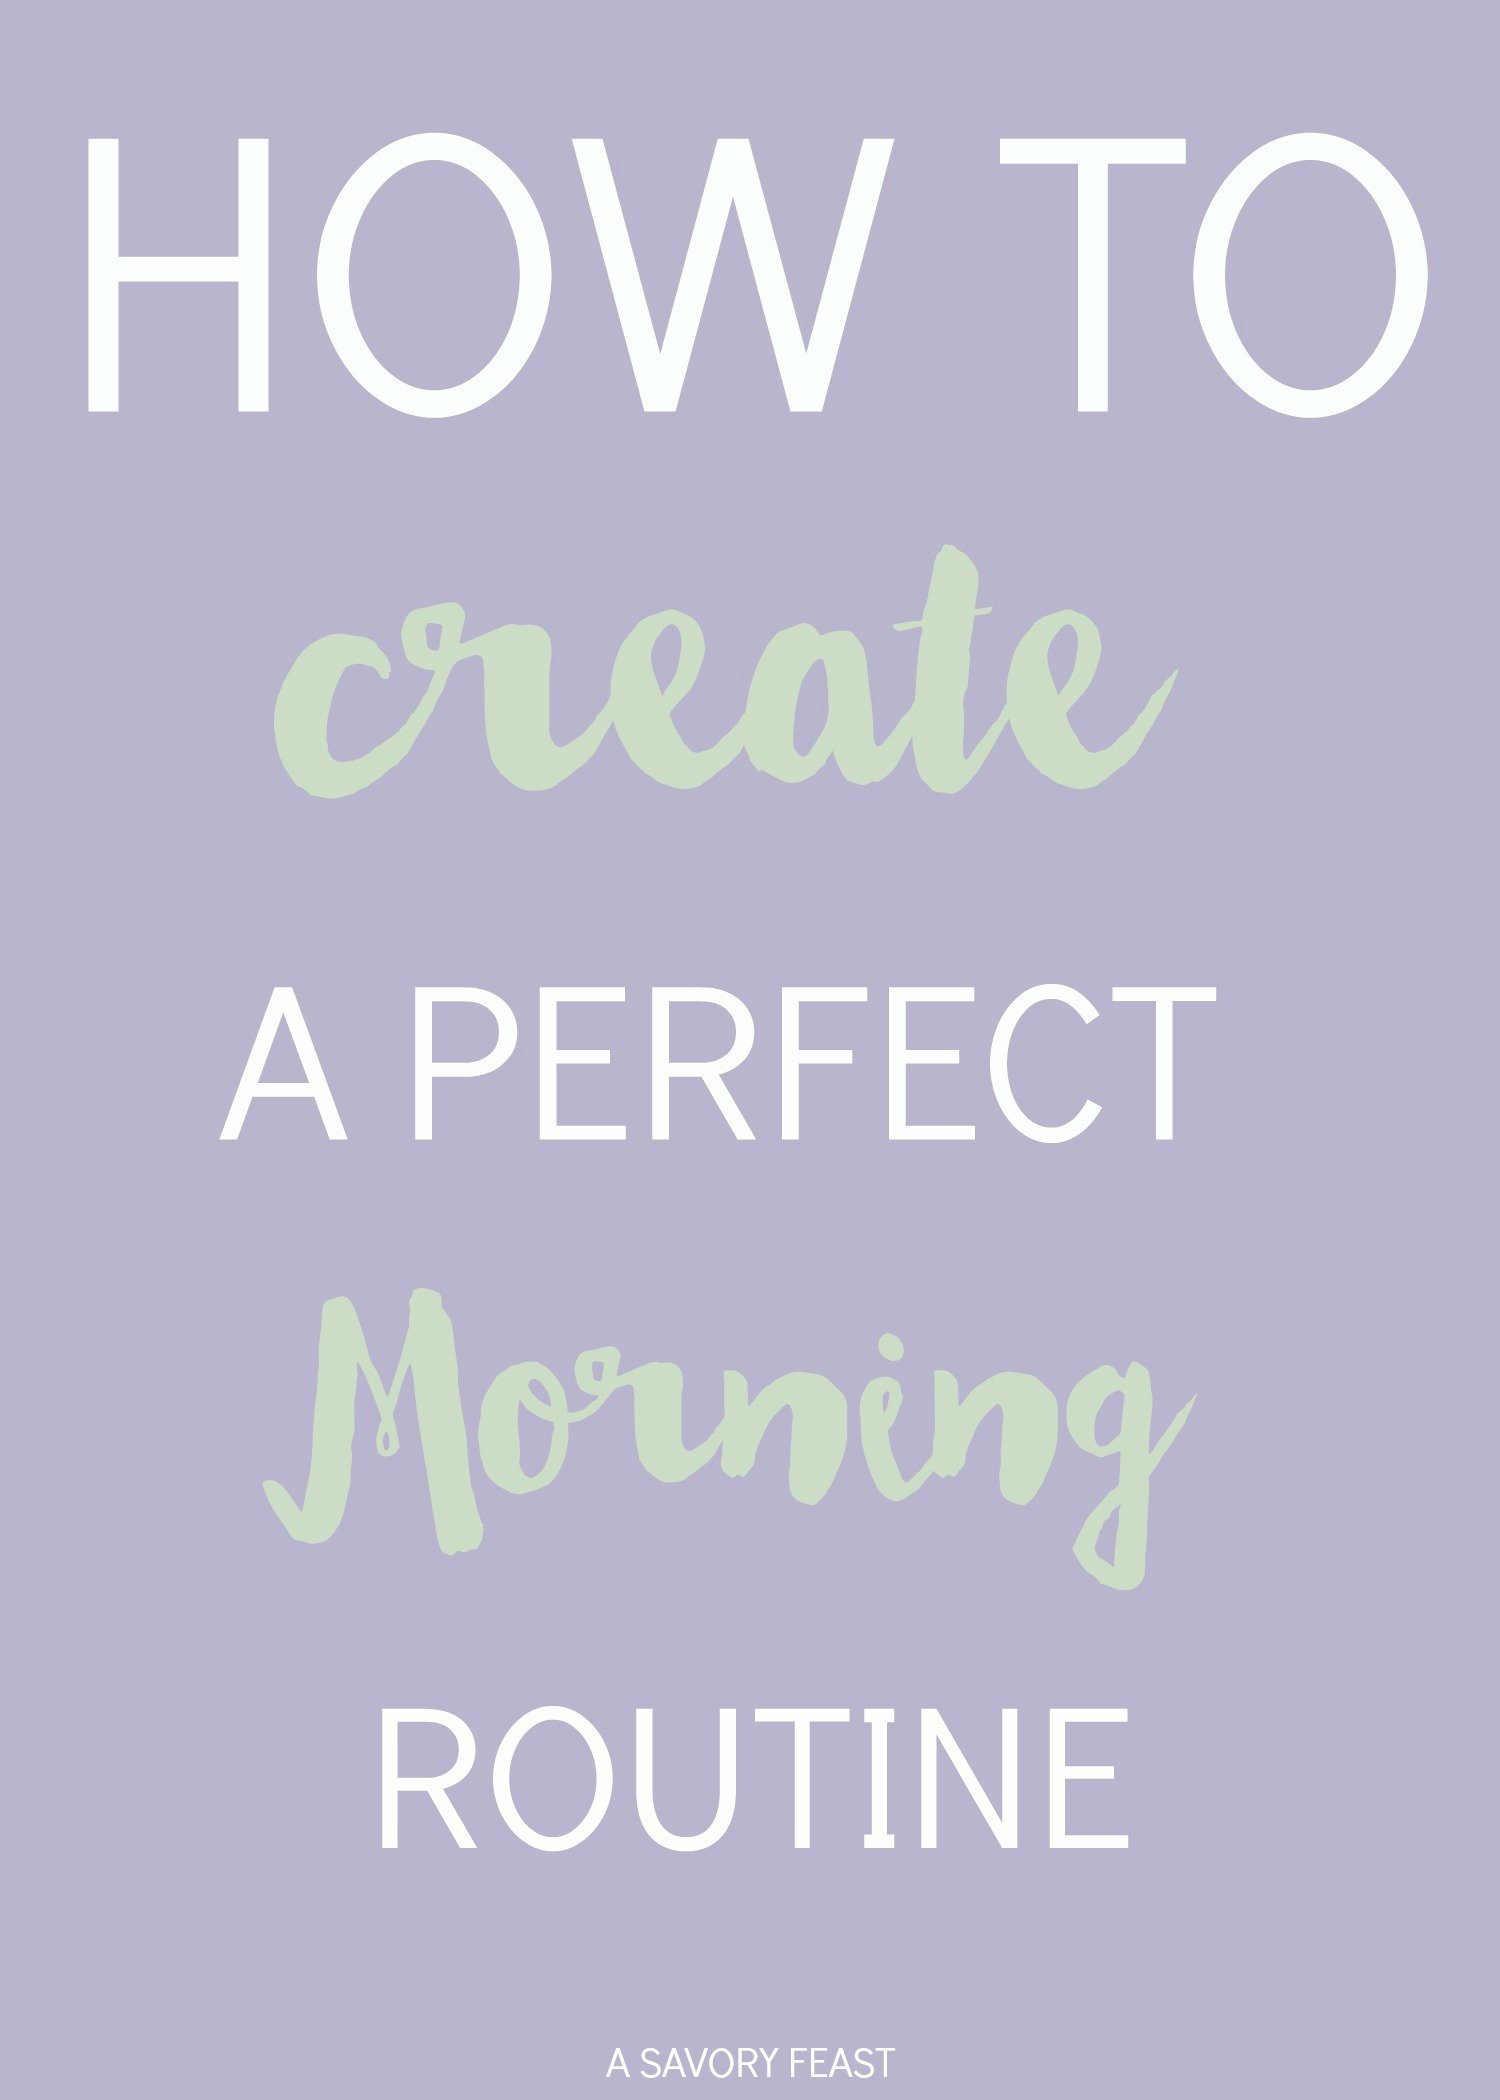 Need a change? Here's a step-by-step guide to creating the perfect morning routine.